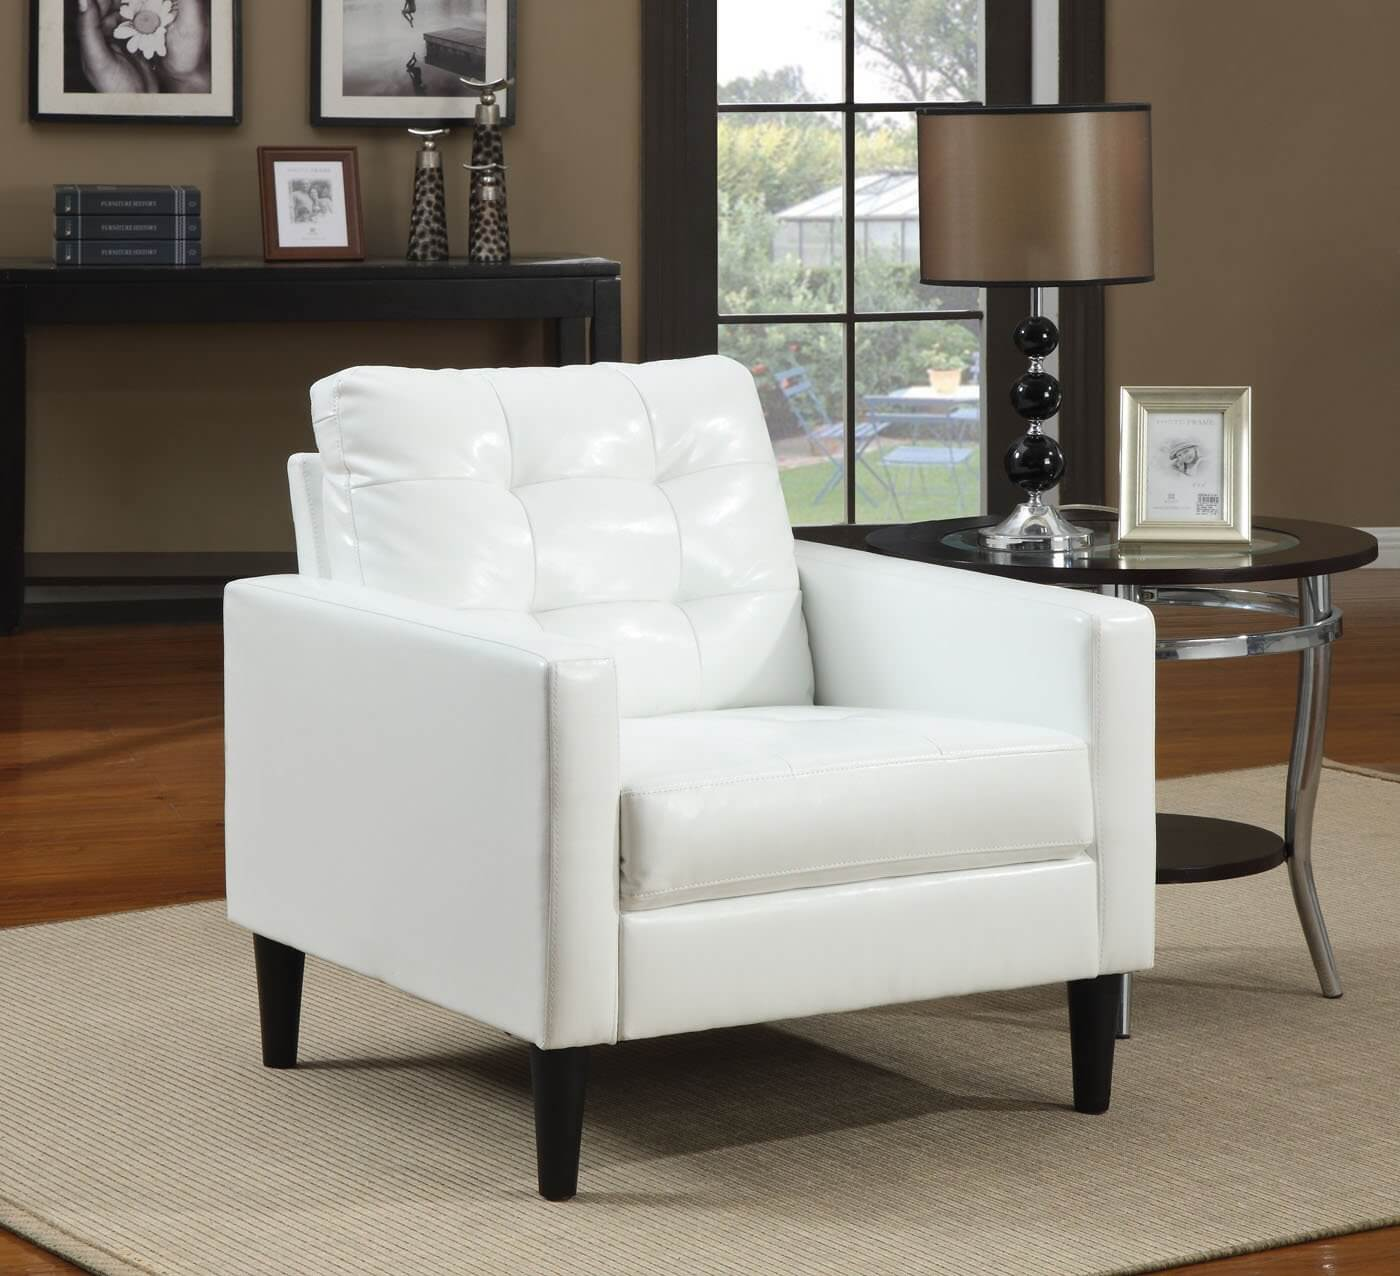 chairs designs for living room sets sale online 37 white modern accent the balin collection chair from acme features stuffed cushion back in polyurethane faux leather